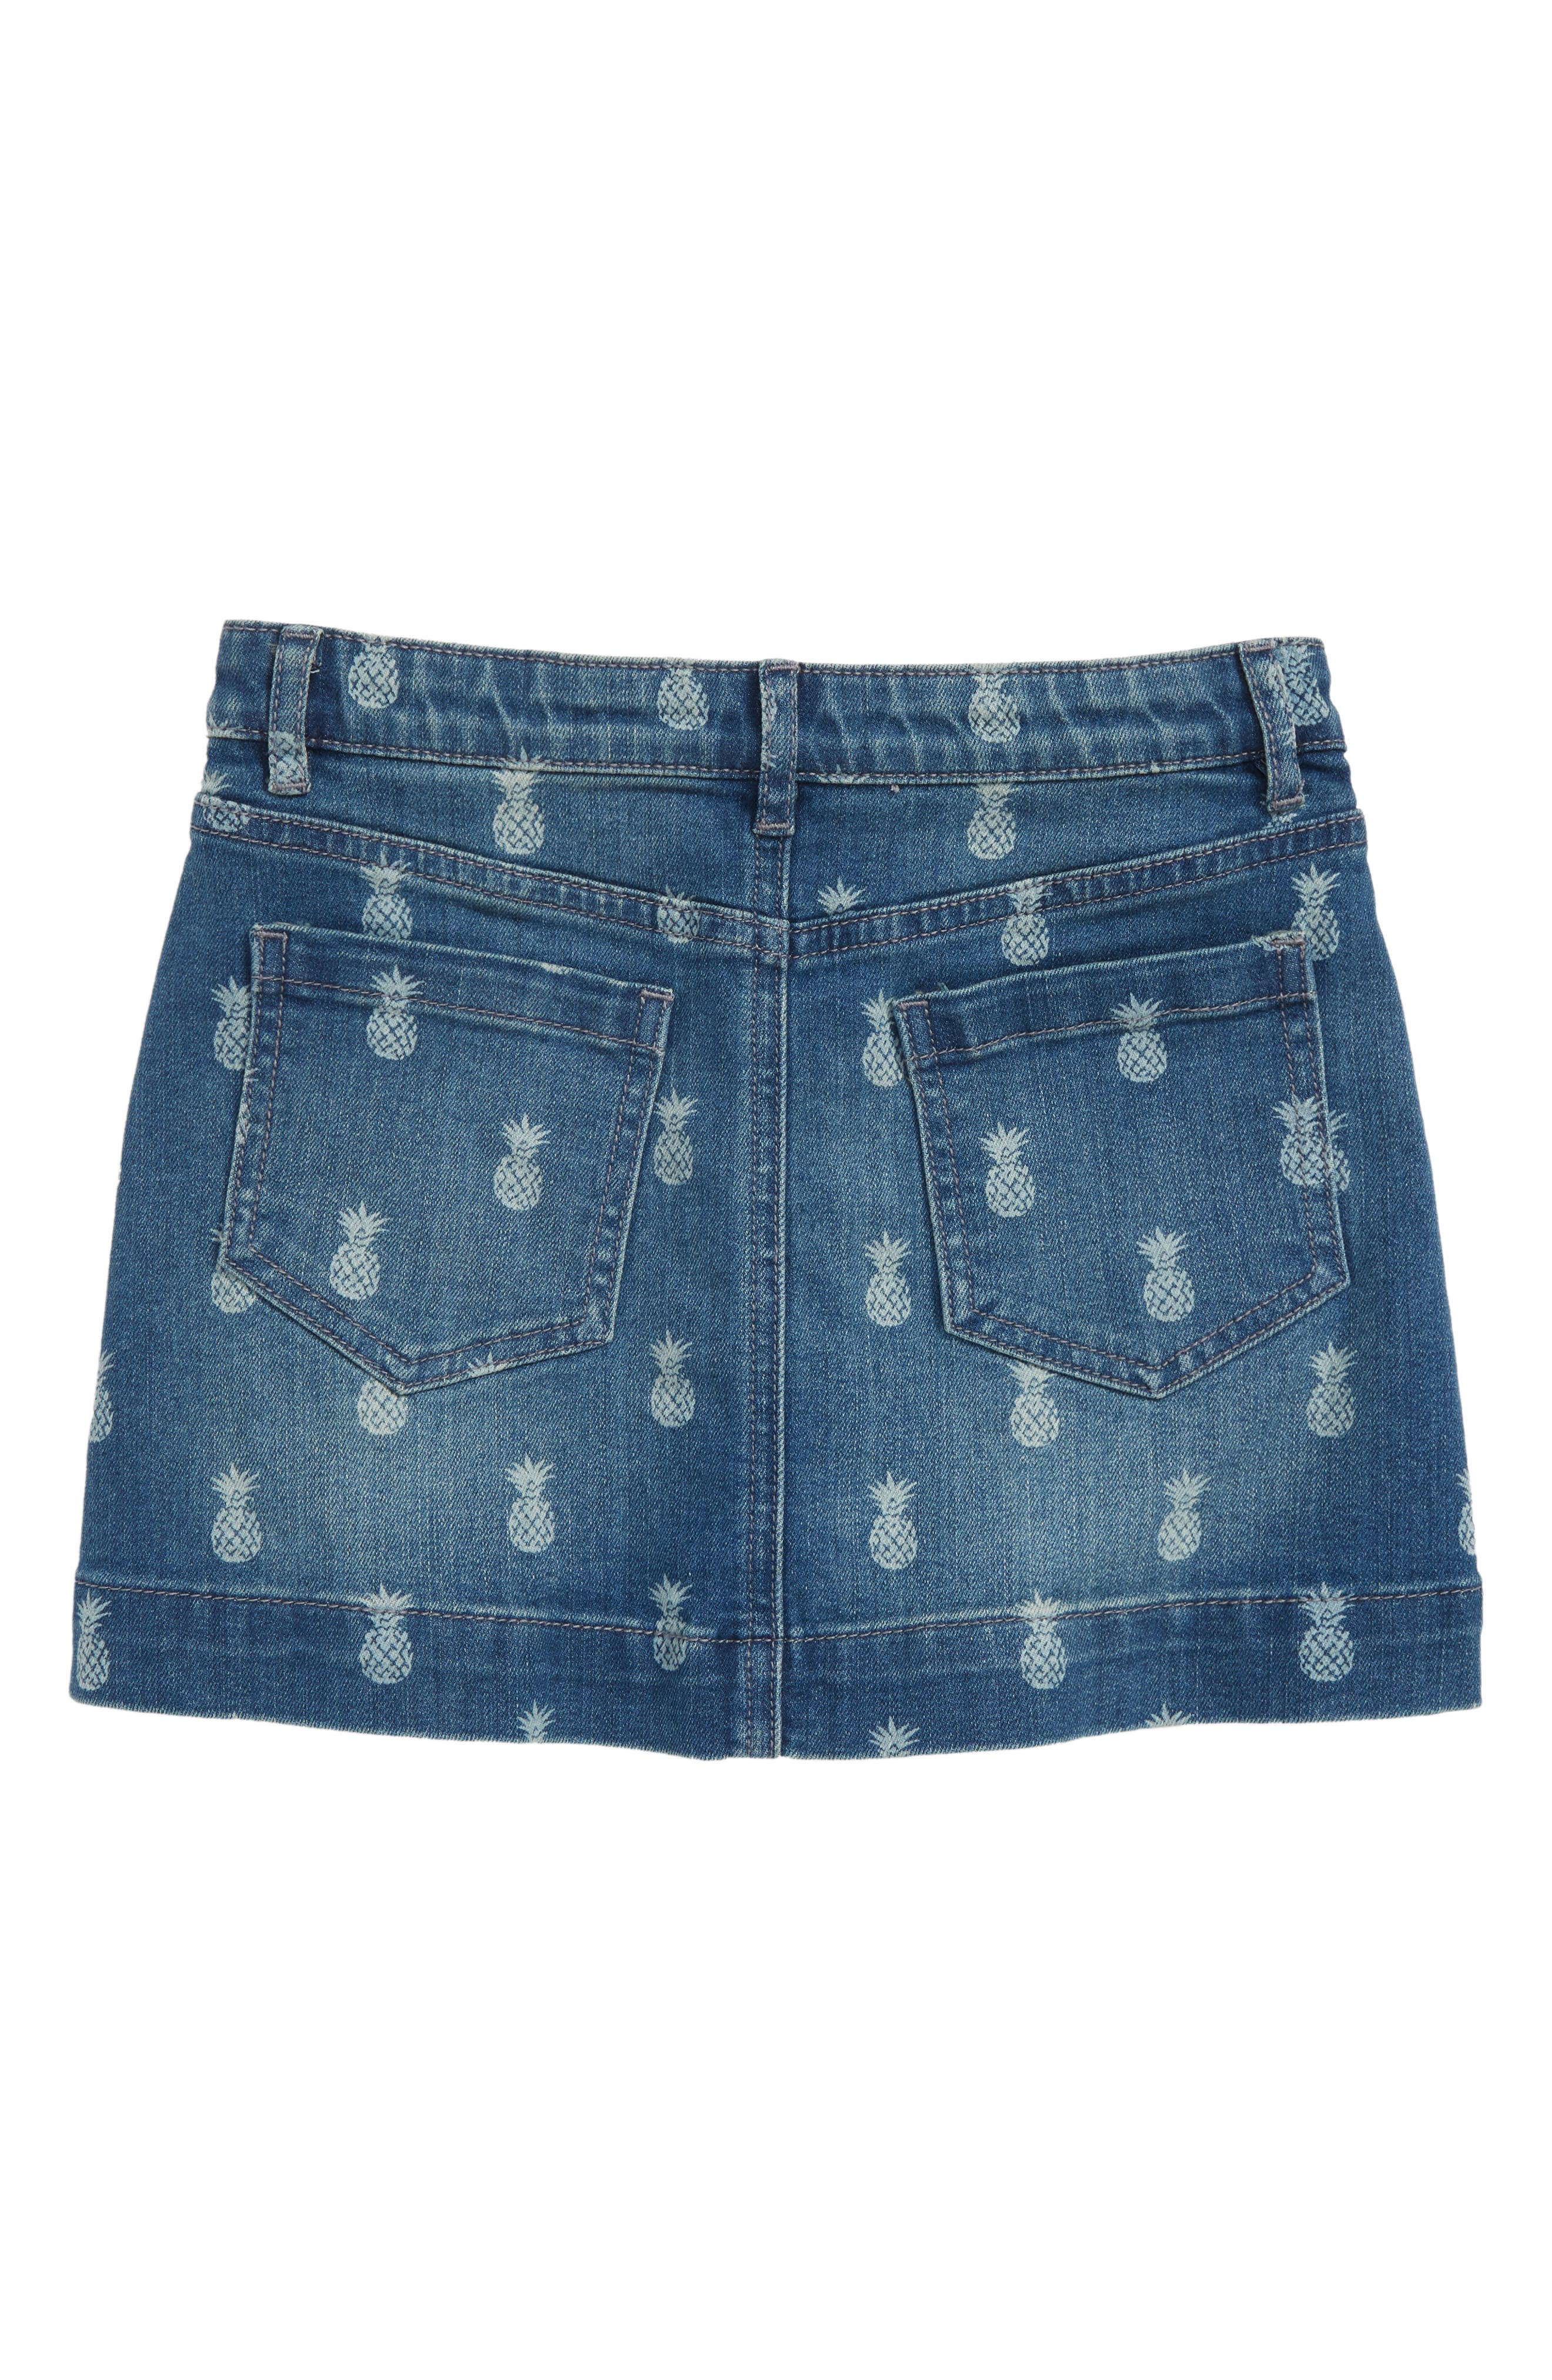 Pineapple Print Denim Skirt,                             Alternate thumbnail 2, color,                             400